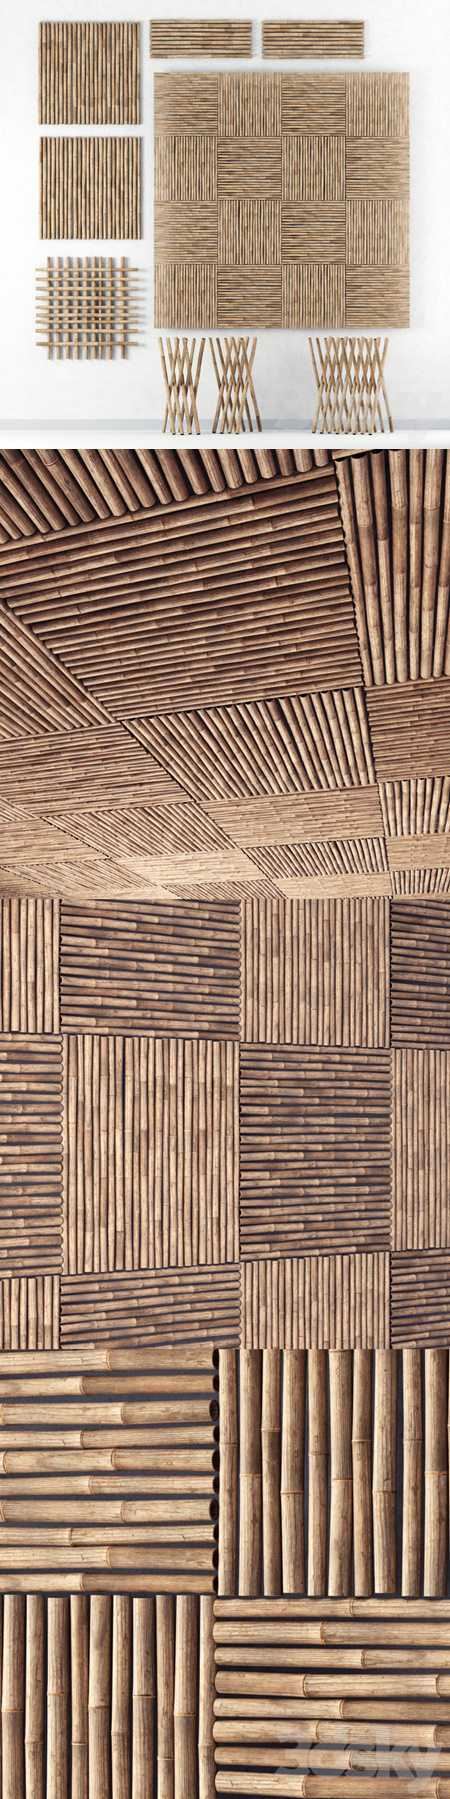 Decor of bamboo